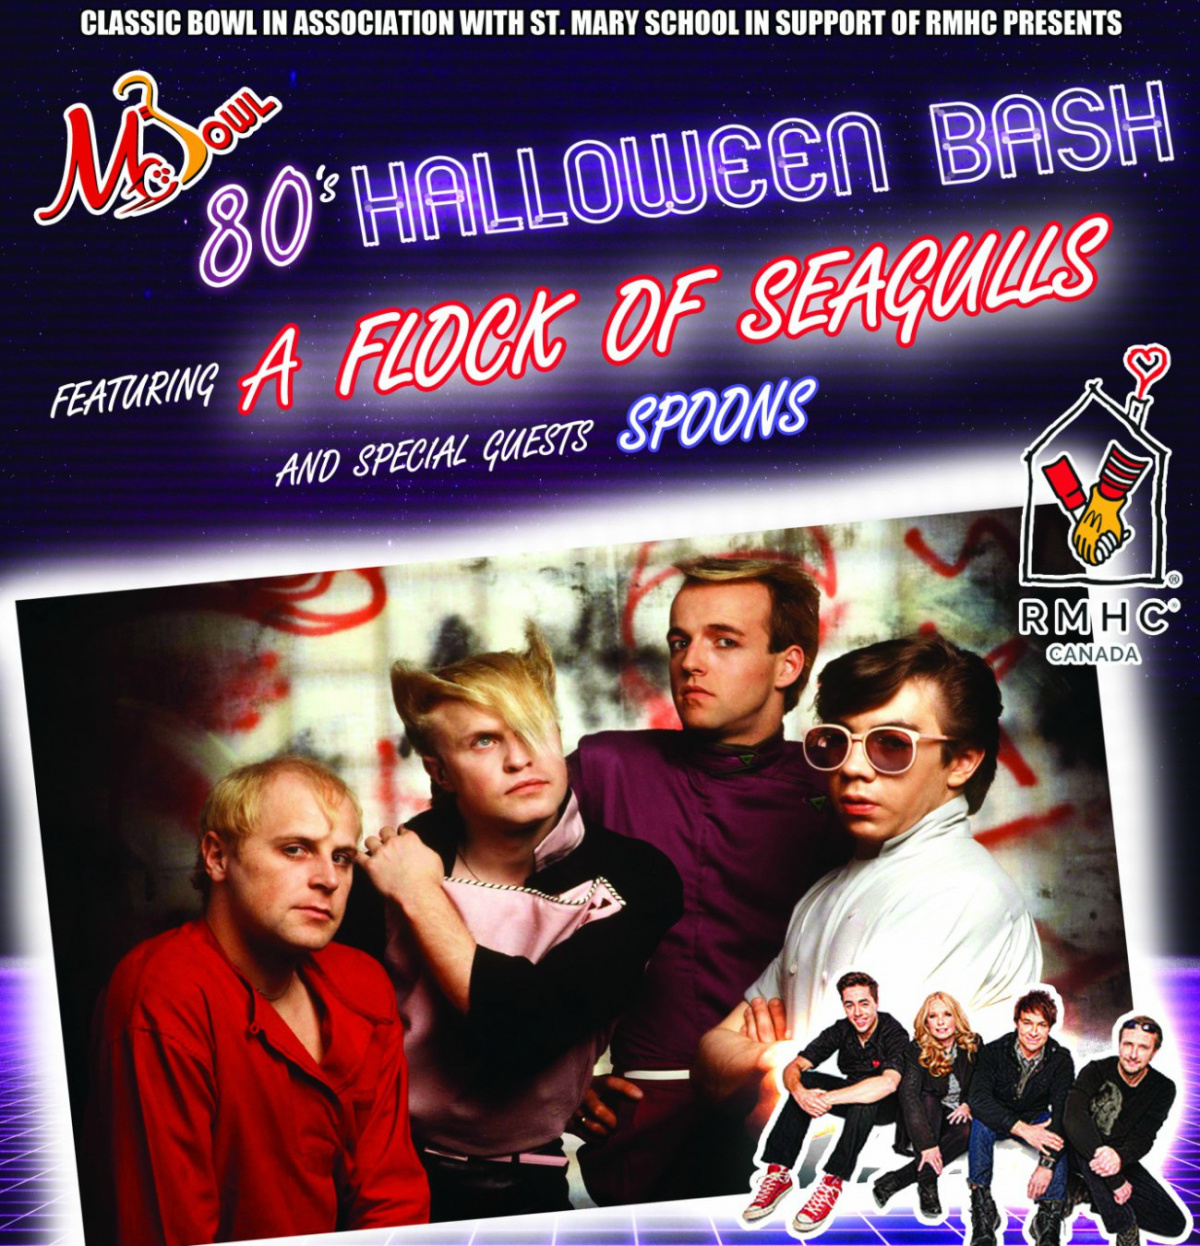 See Flock Of Seagulls and The Spoons